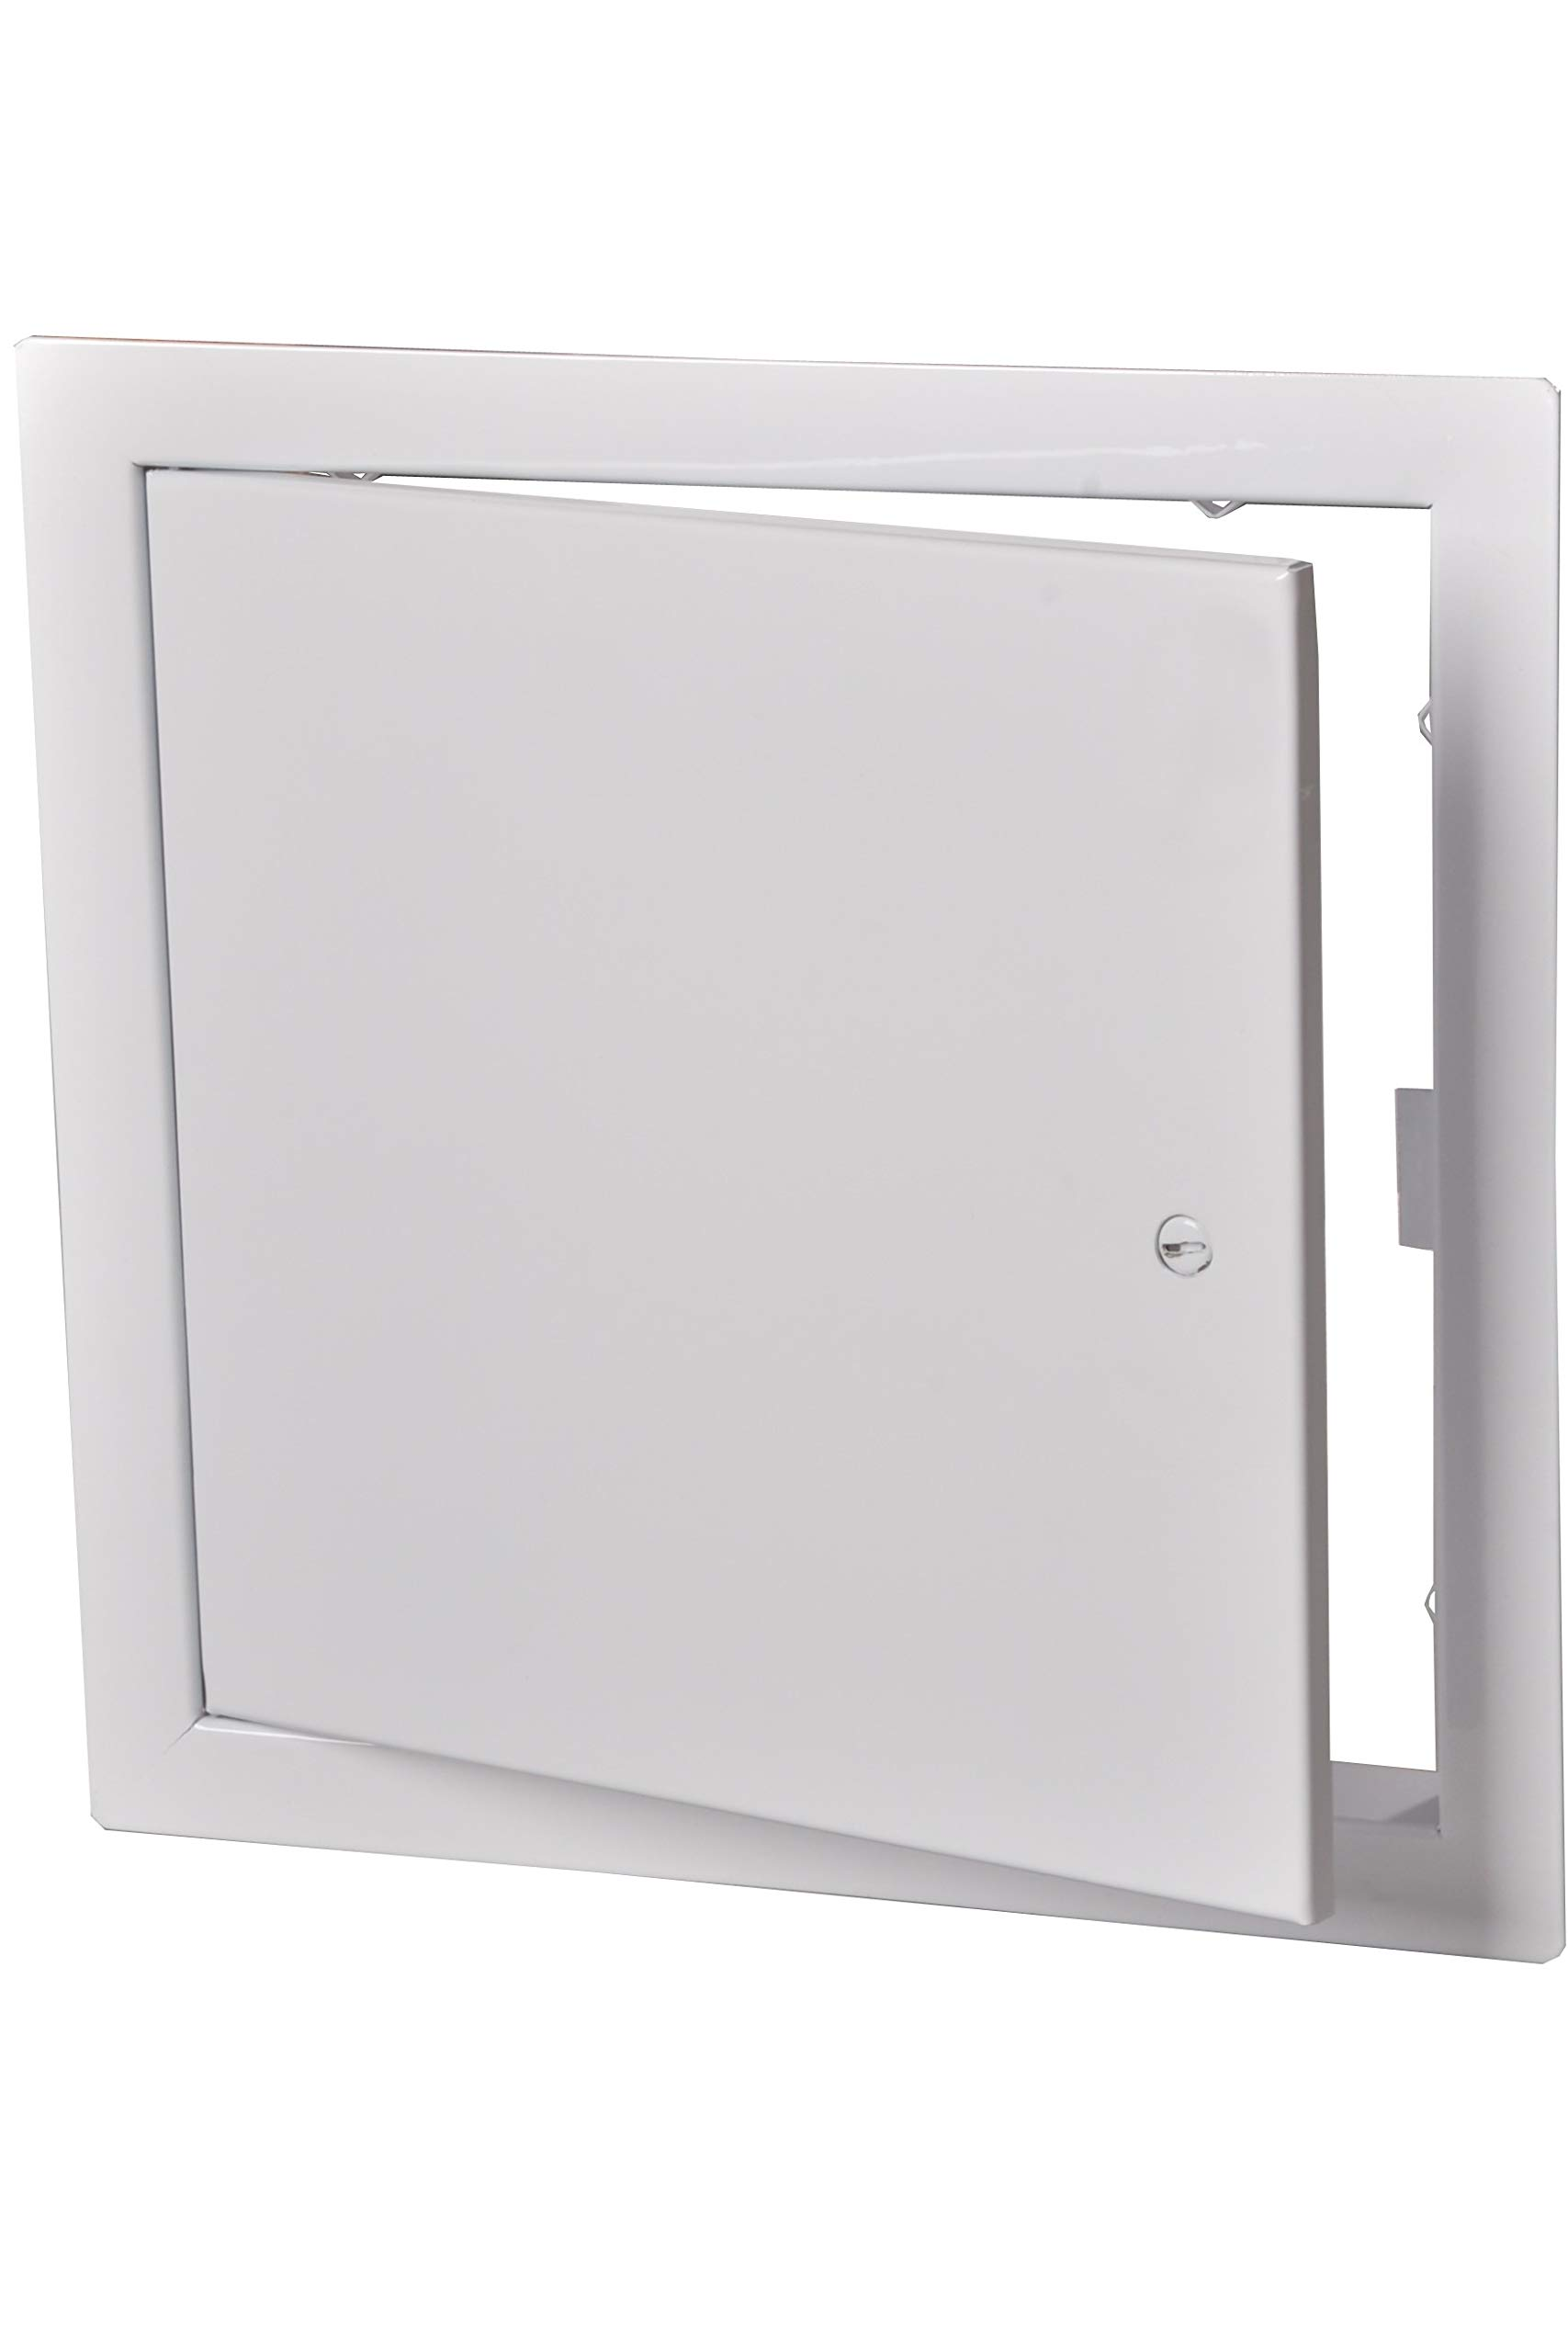 20 X 20 Multi Purpose Access Door, System B10, white, 14/16ga. metal by FF Systems Inc